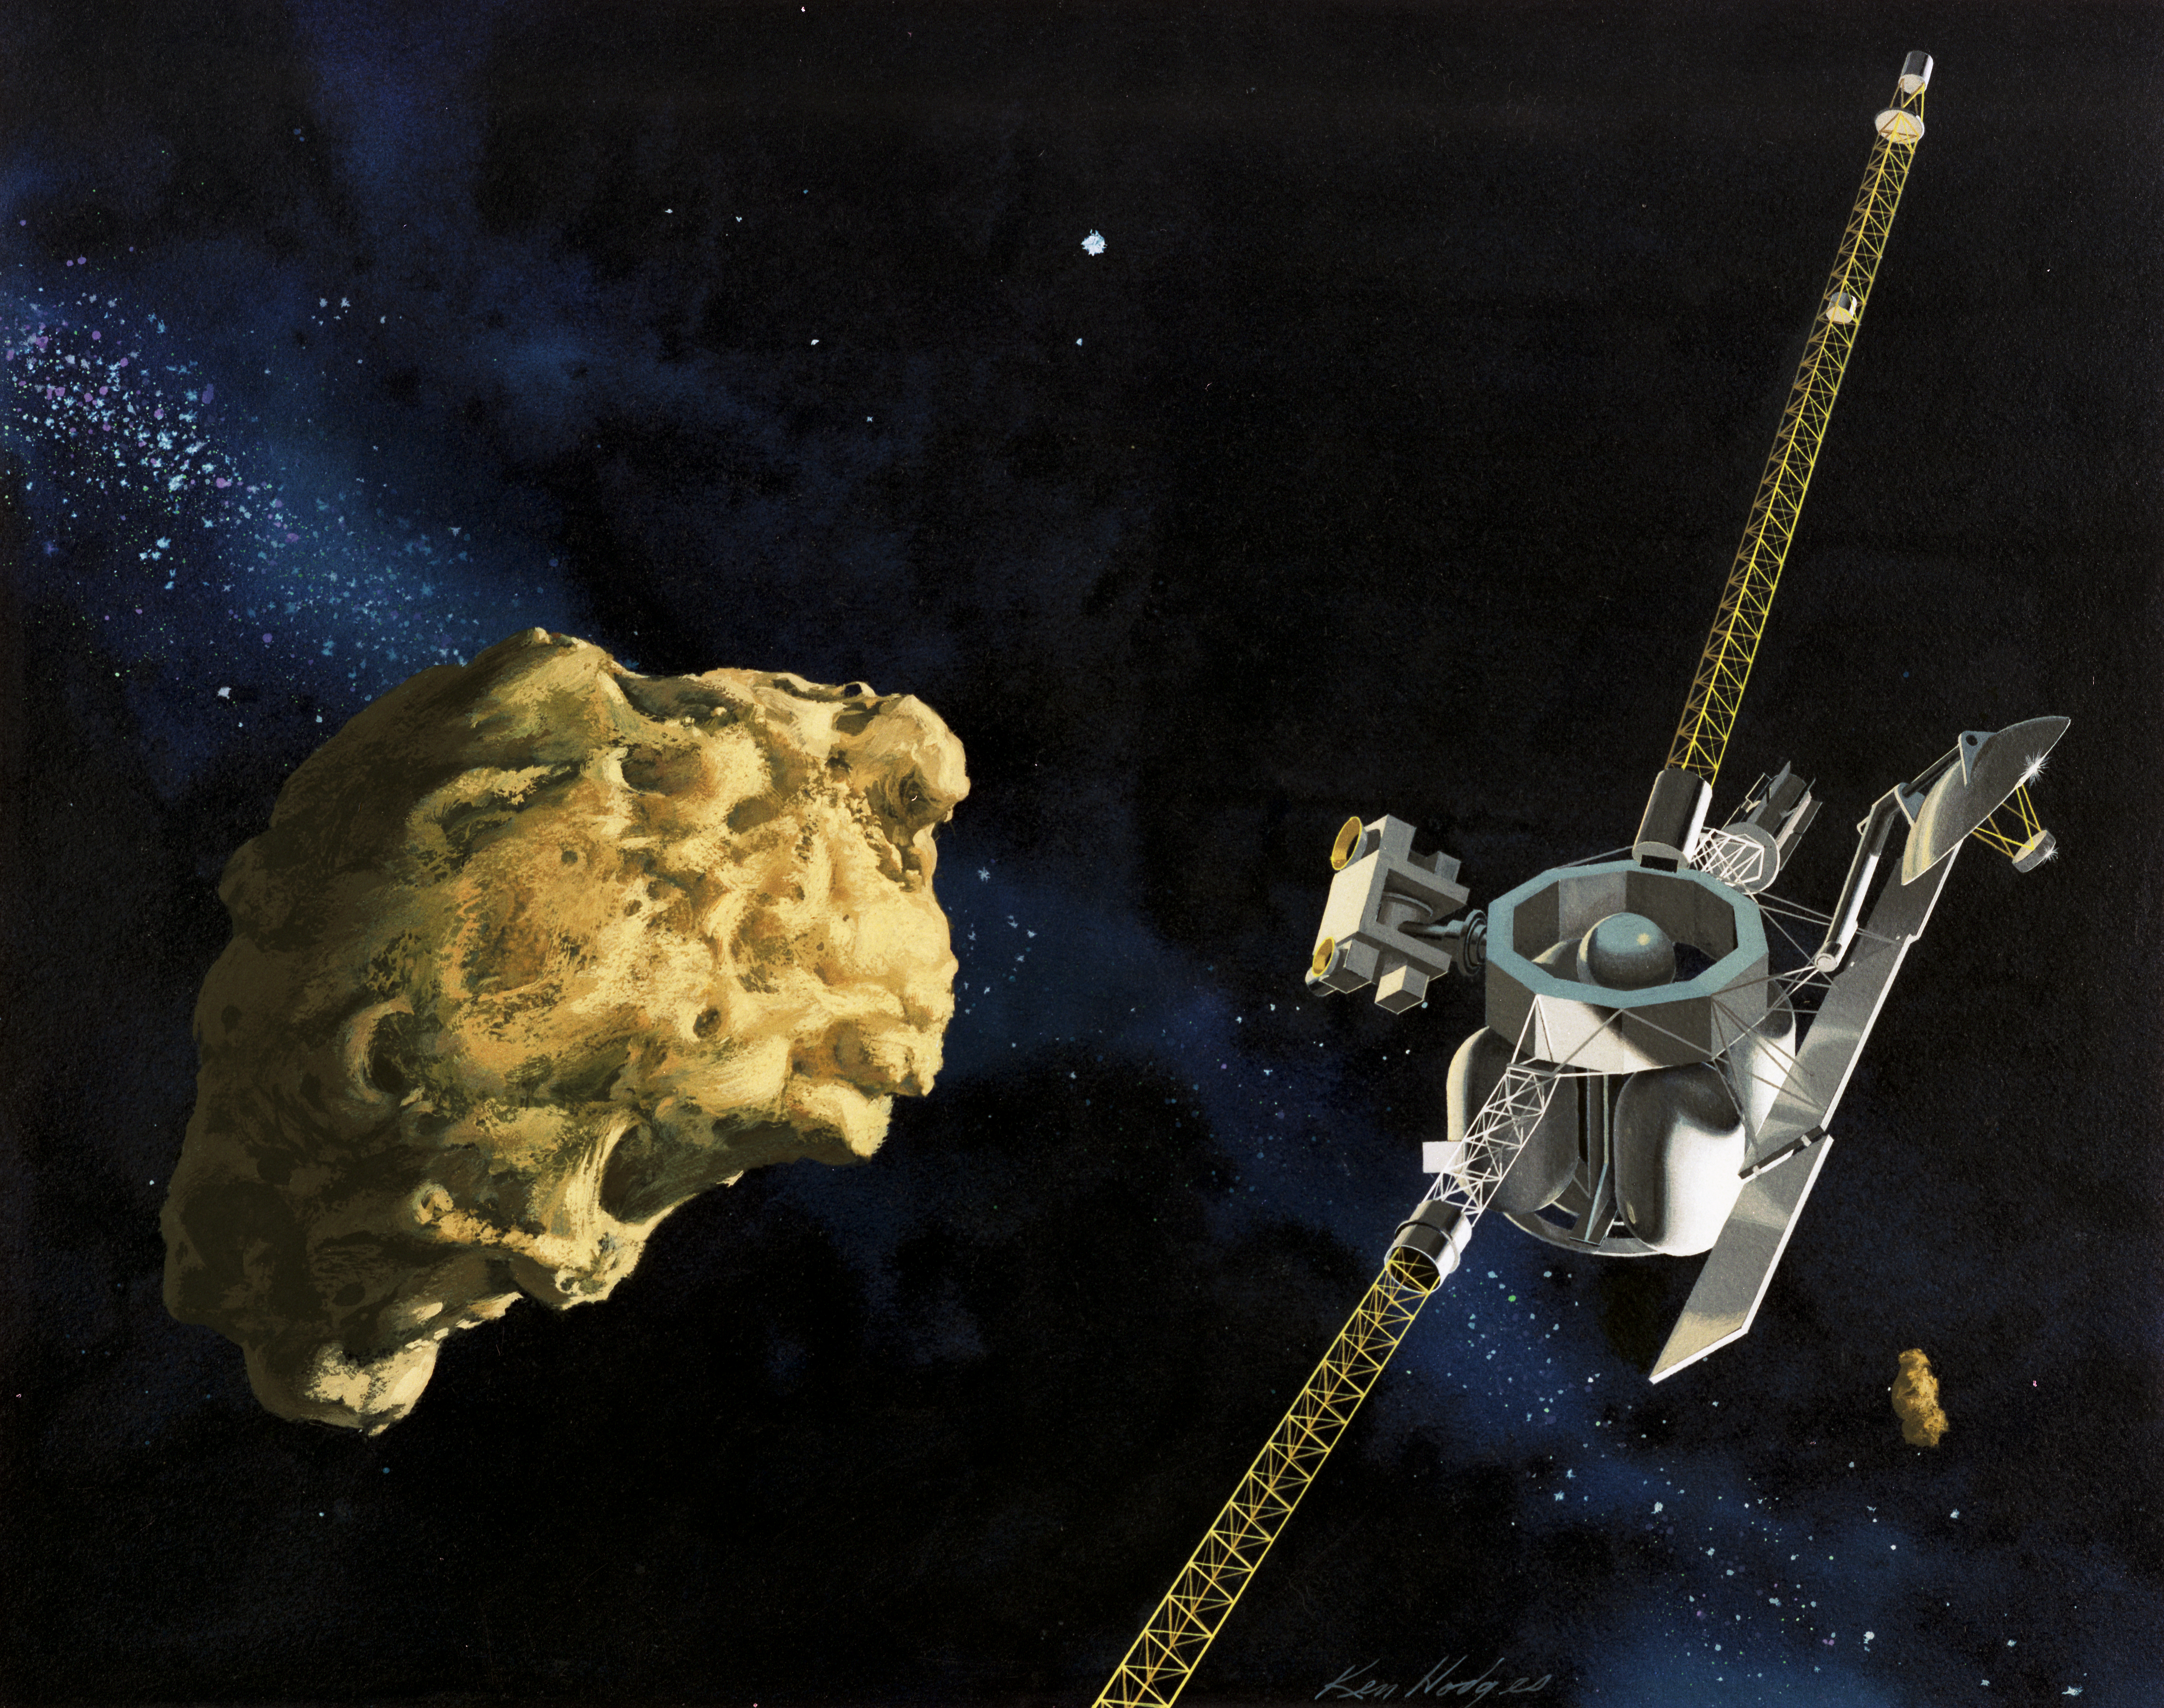 Painting of spacecraft flying close to a comet.